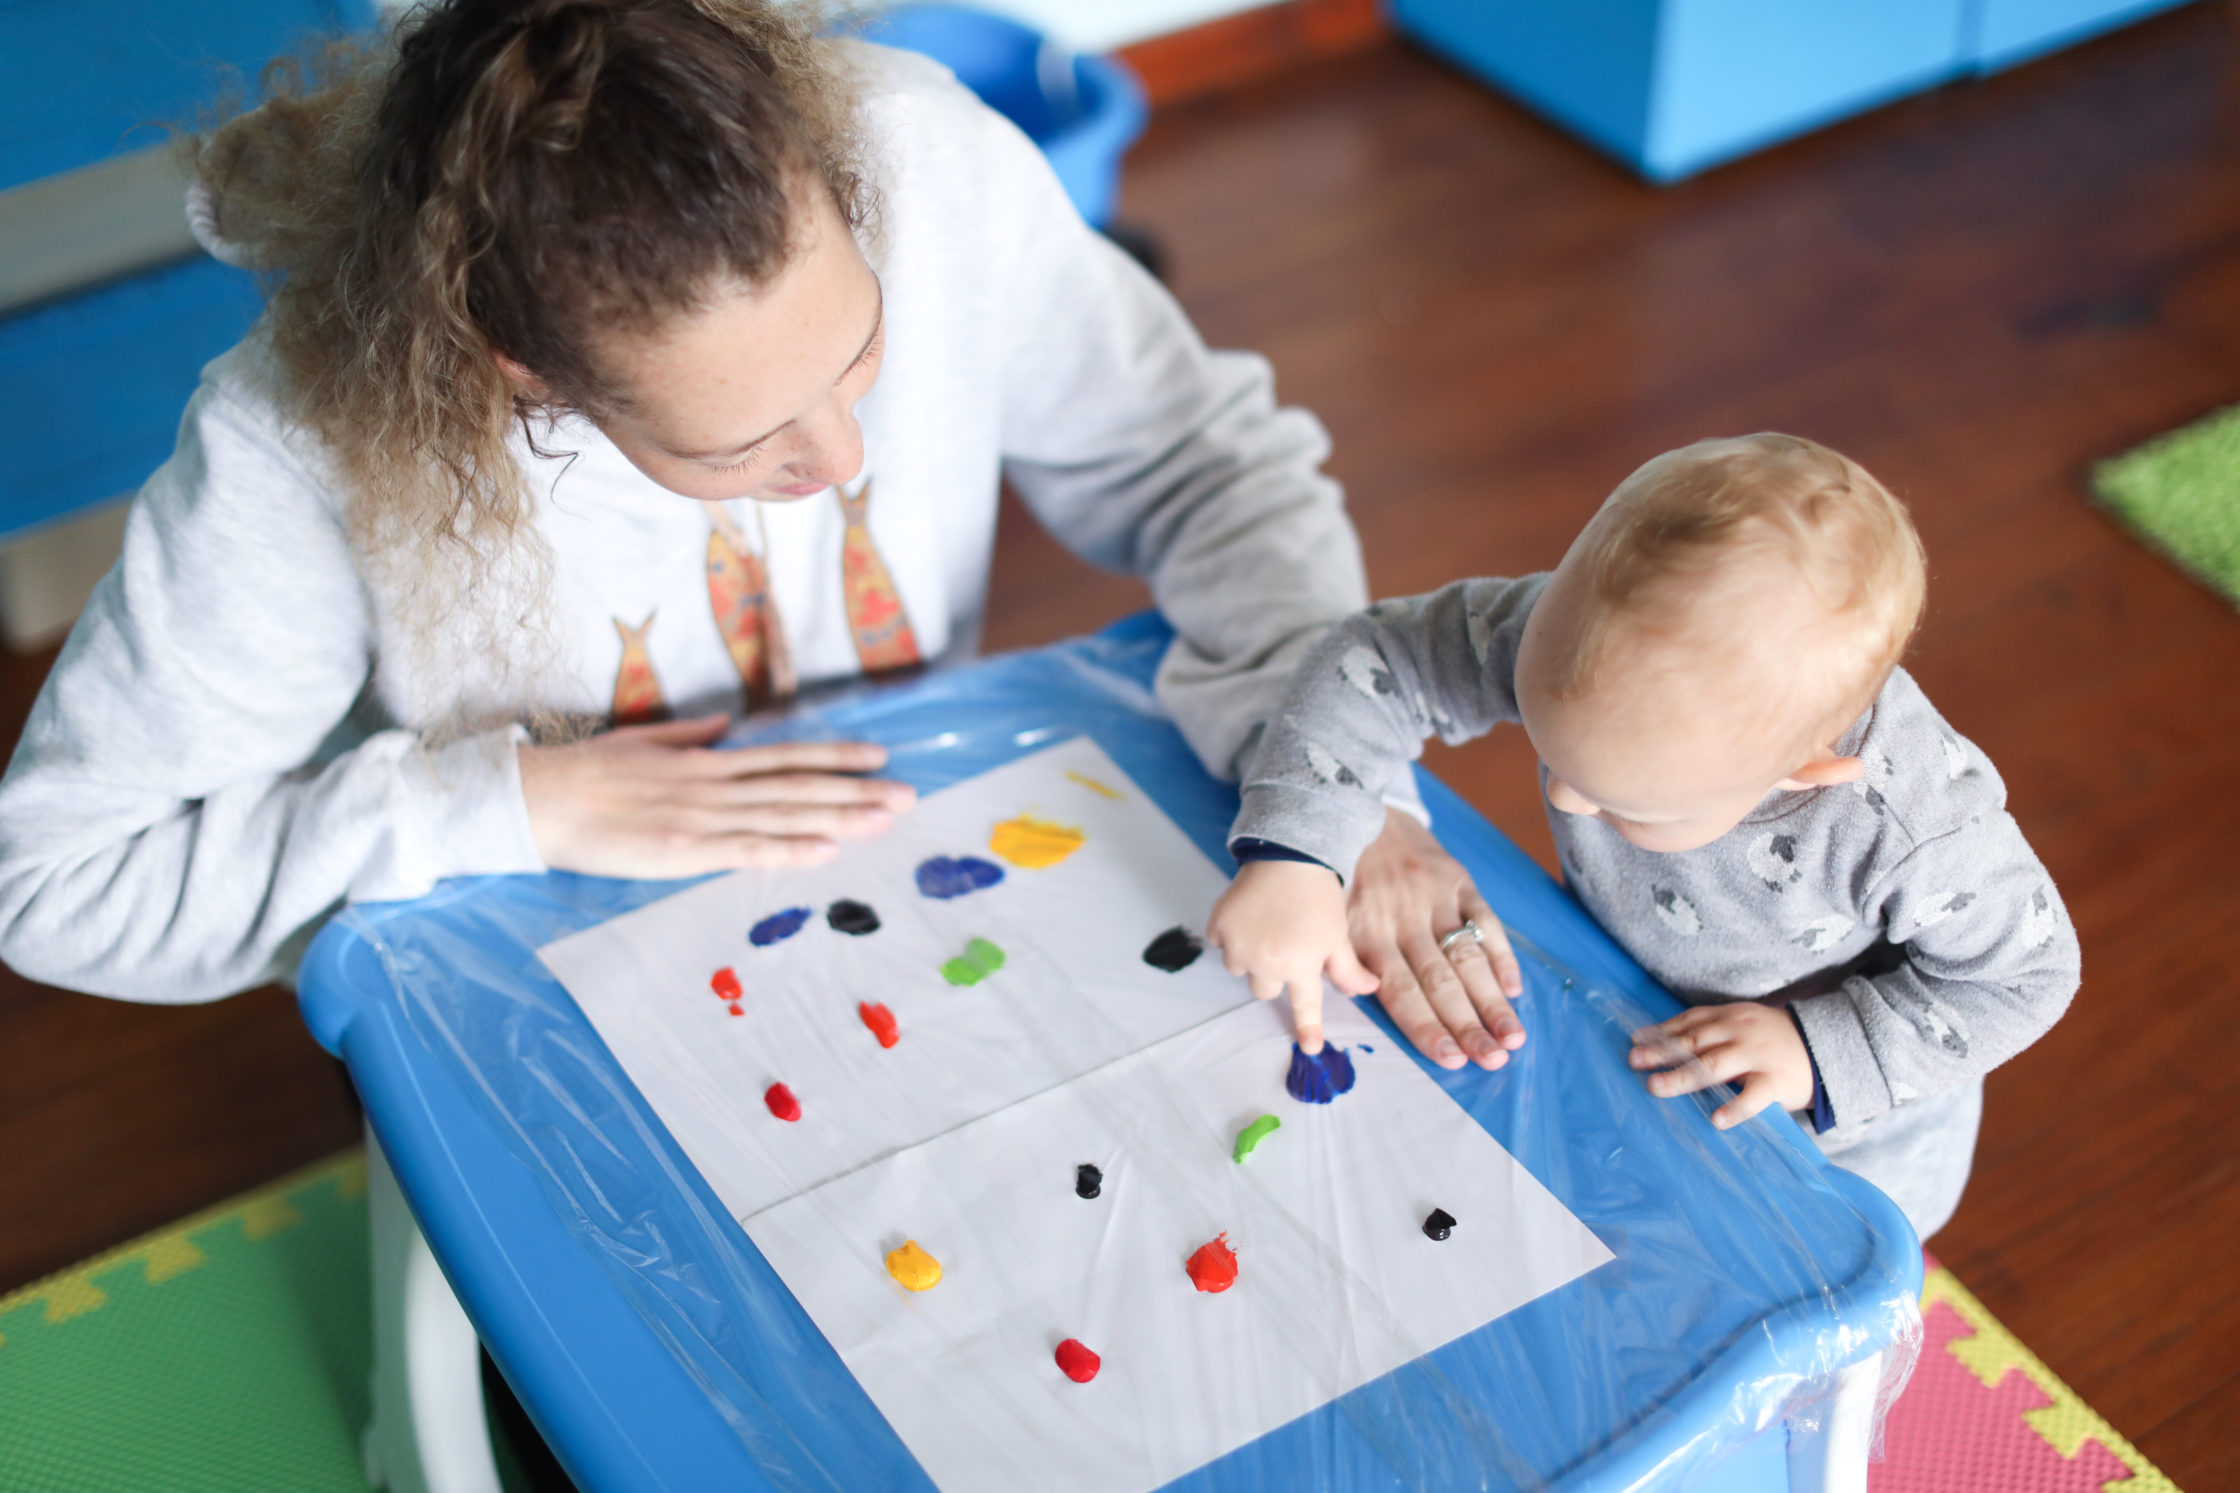 a Baby boy finger painting with his mother.